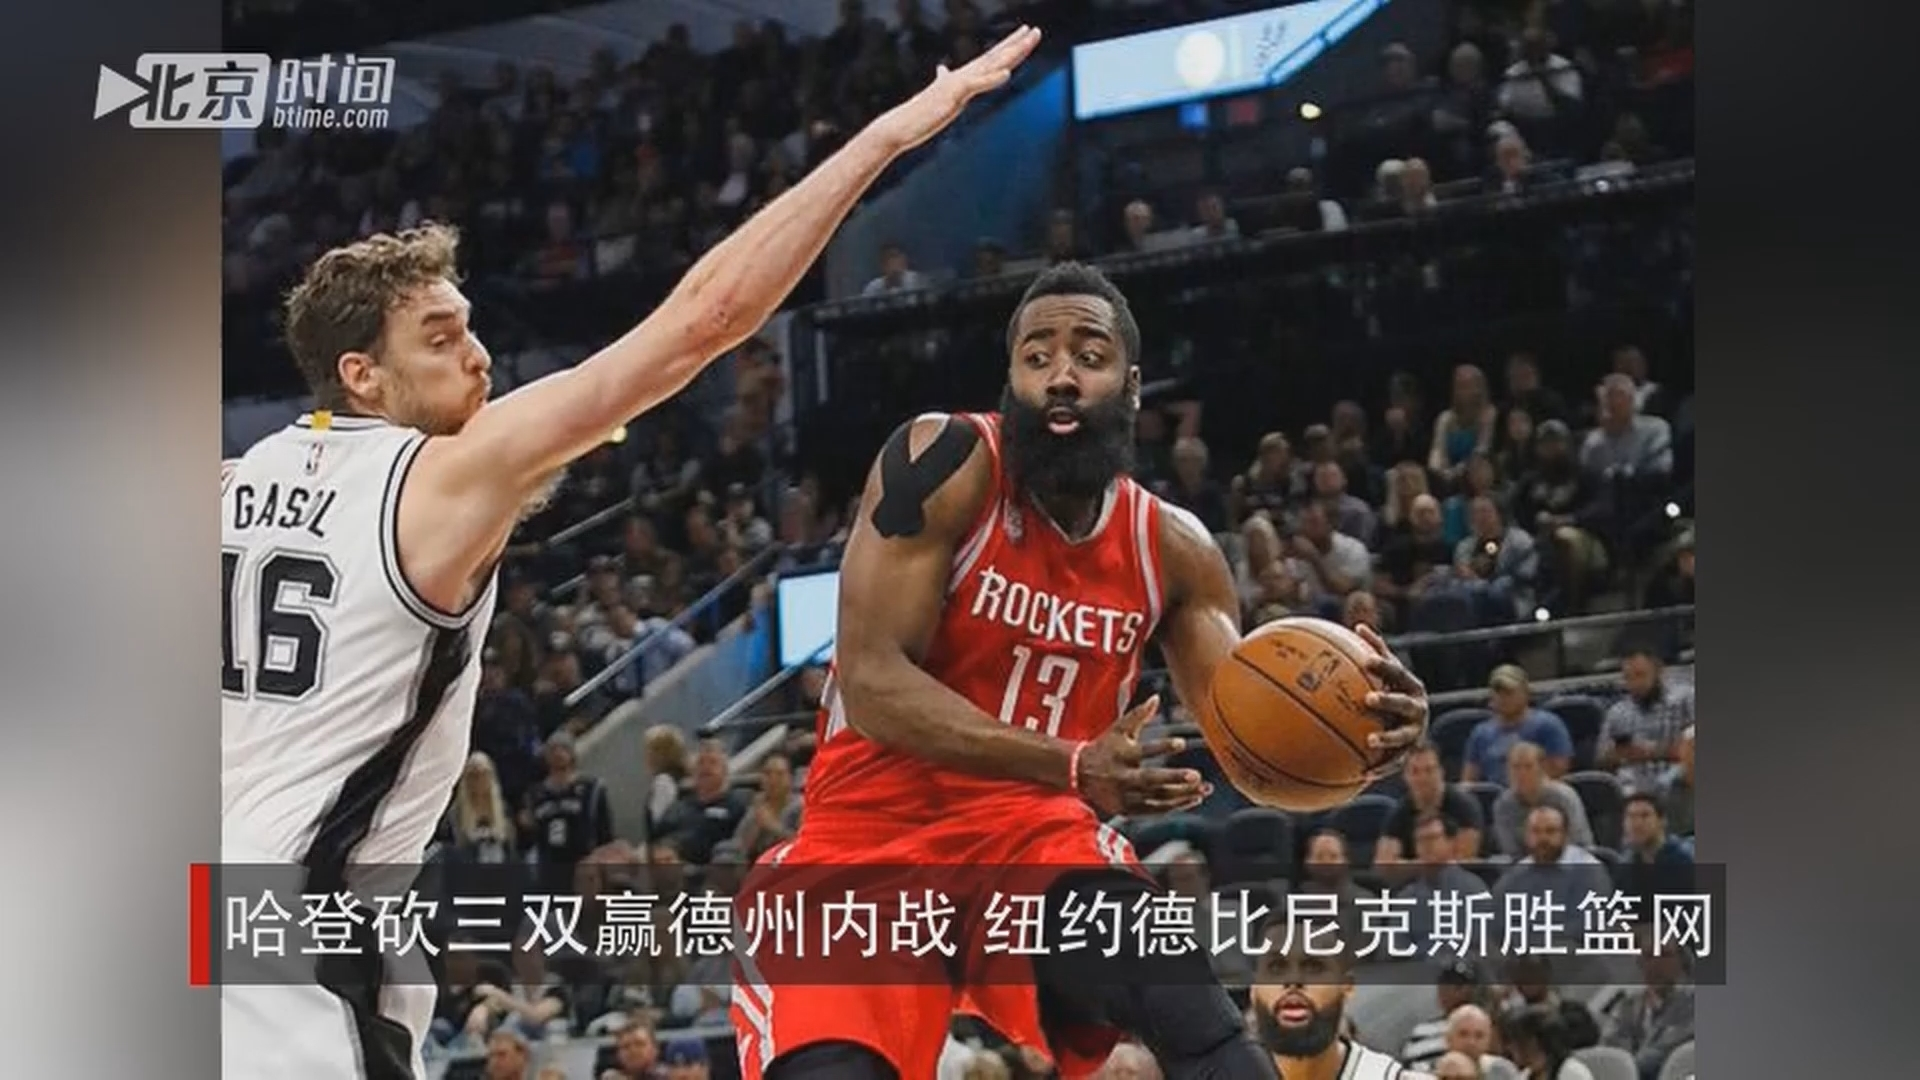 Harden cut 3 big four 88 win the civil war in Dezhou